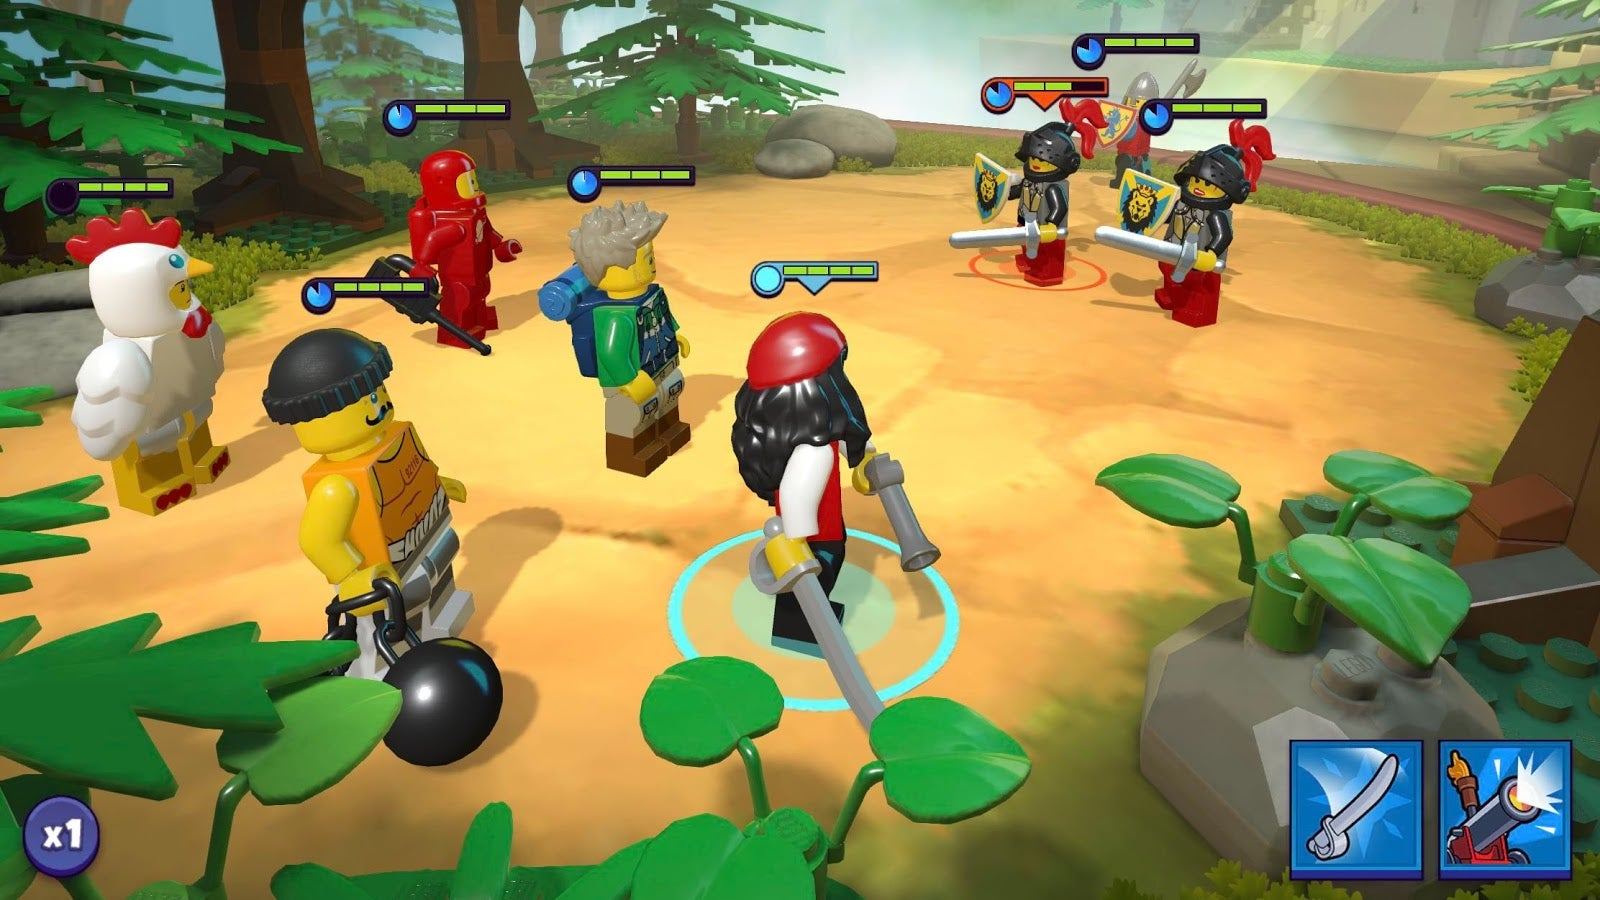 The Latest Lego Game Is A Star Wars: Galaxy Of Heroes Clone, And That's Fine